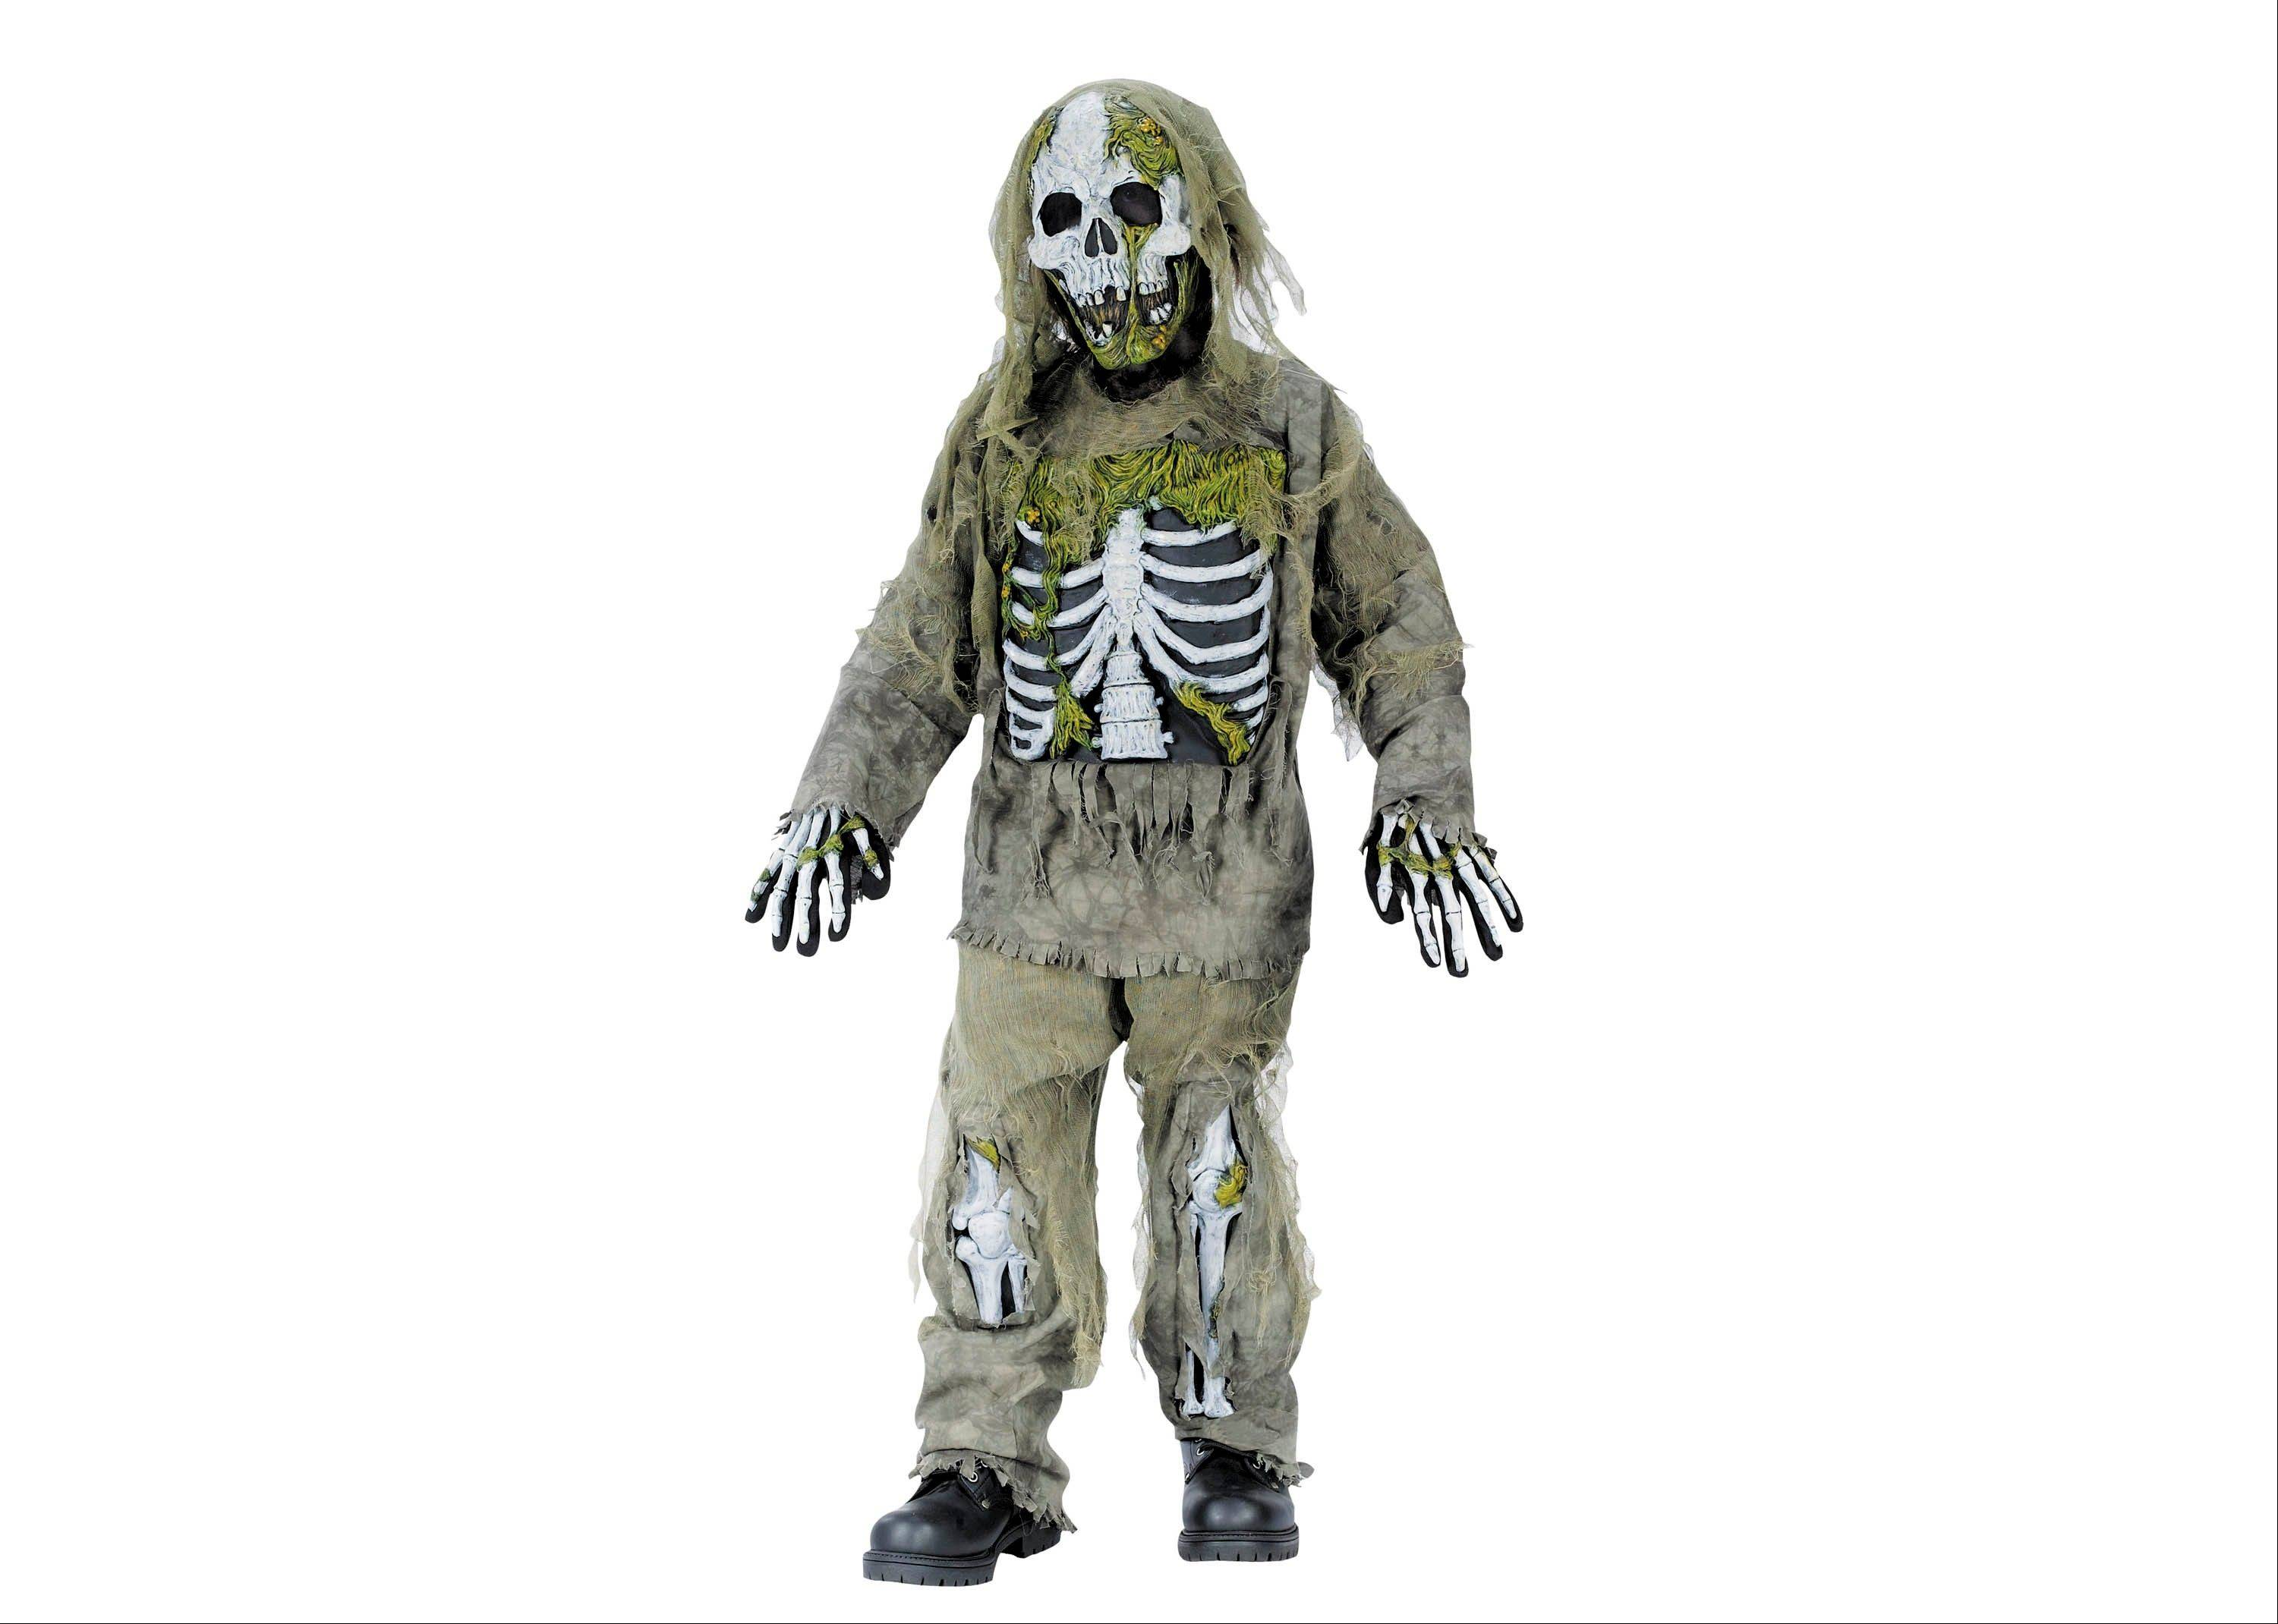 Halloween costumes for young children are getting more grisly this year. A boy's skeleton zombie costume is just one option.